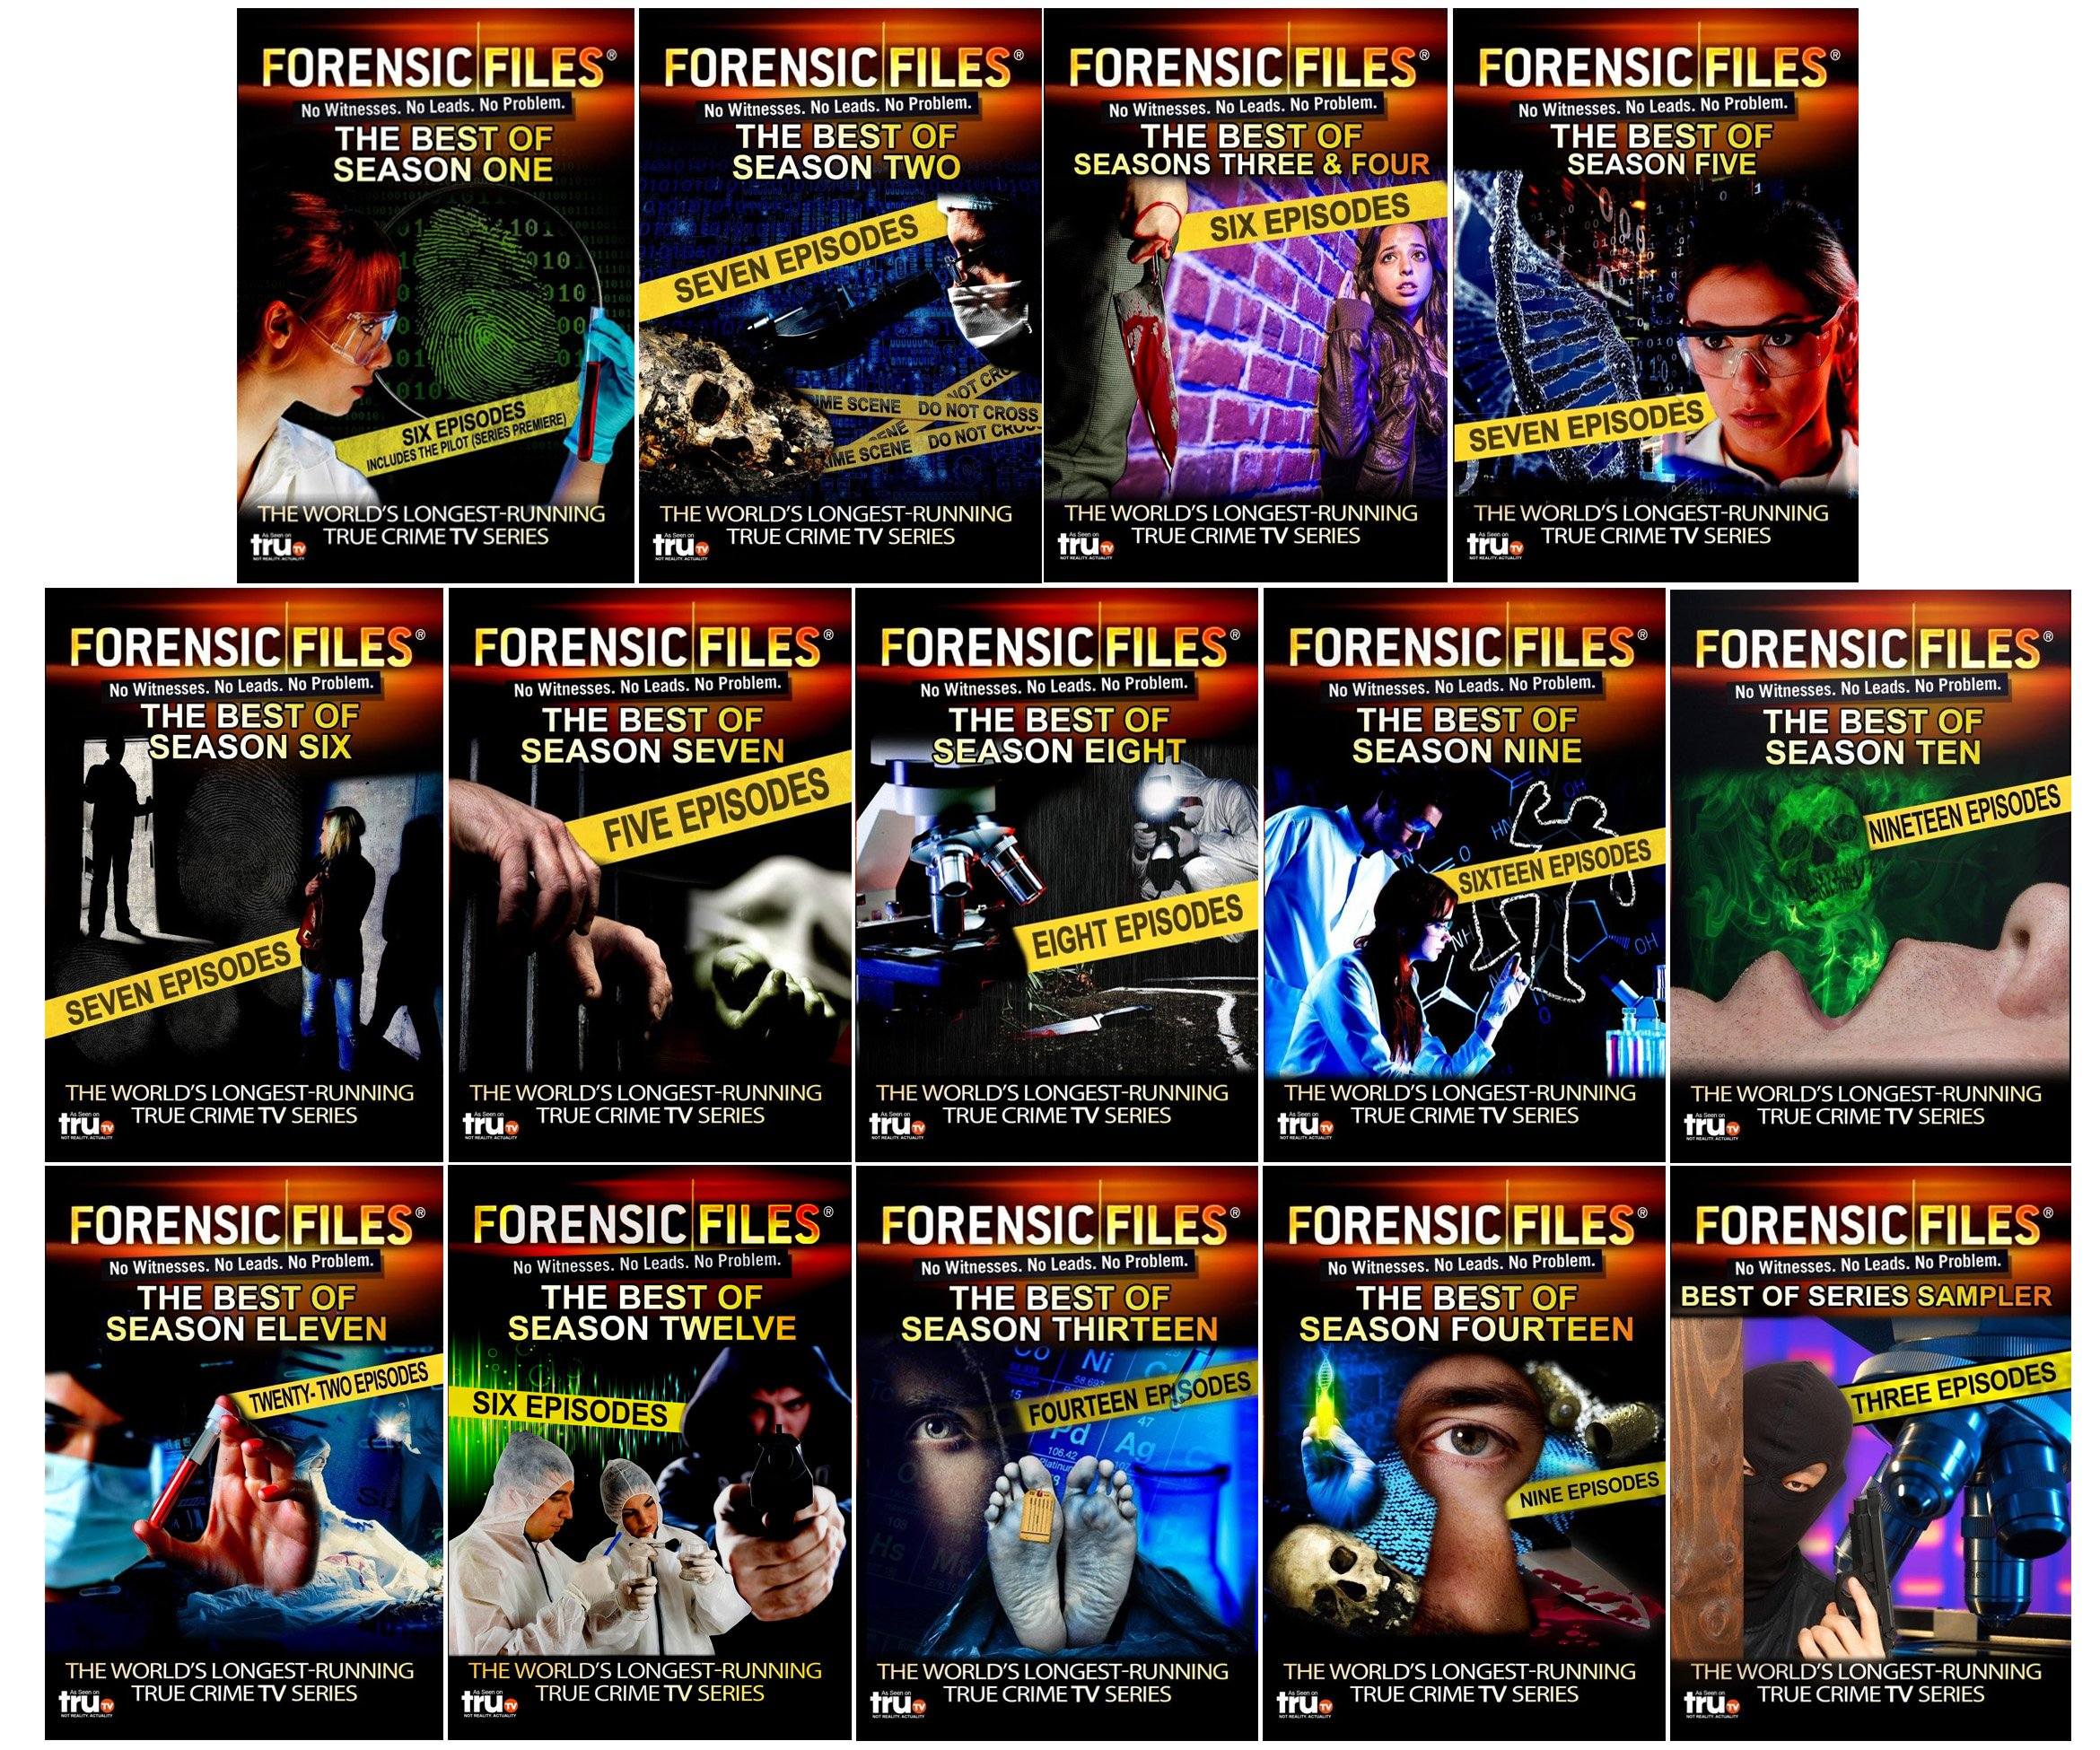 Forensic Files: The Best of All 14 Seasons - 137 Episodes - 39 DVD Collection